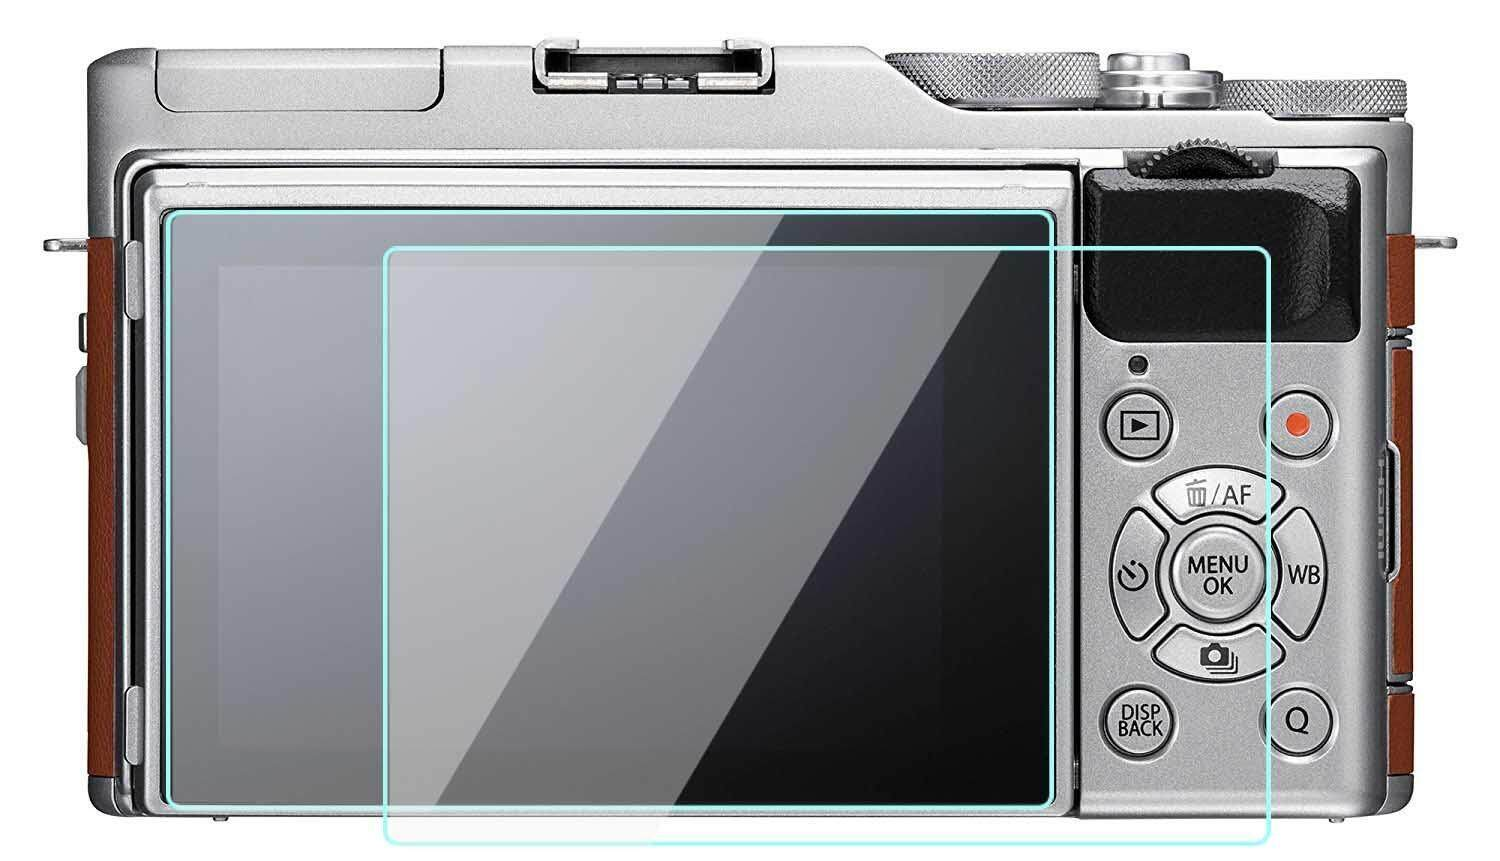 Glass LCD Screen Protector Accessorie Compatible for Sony Cyber-shot  DSC-RX10 V IV III II / RX100 M6 M5 VI / A9 A99,Tempered Glass Film for Sony  rx10v